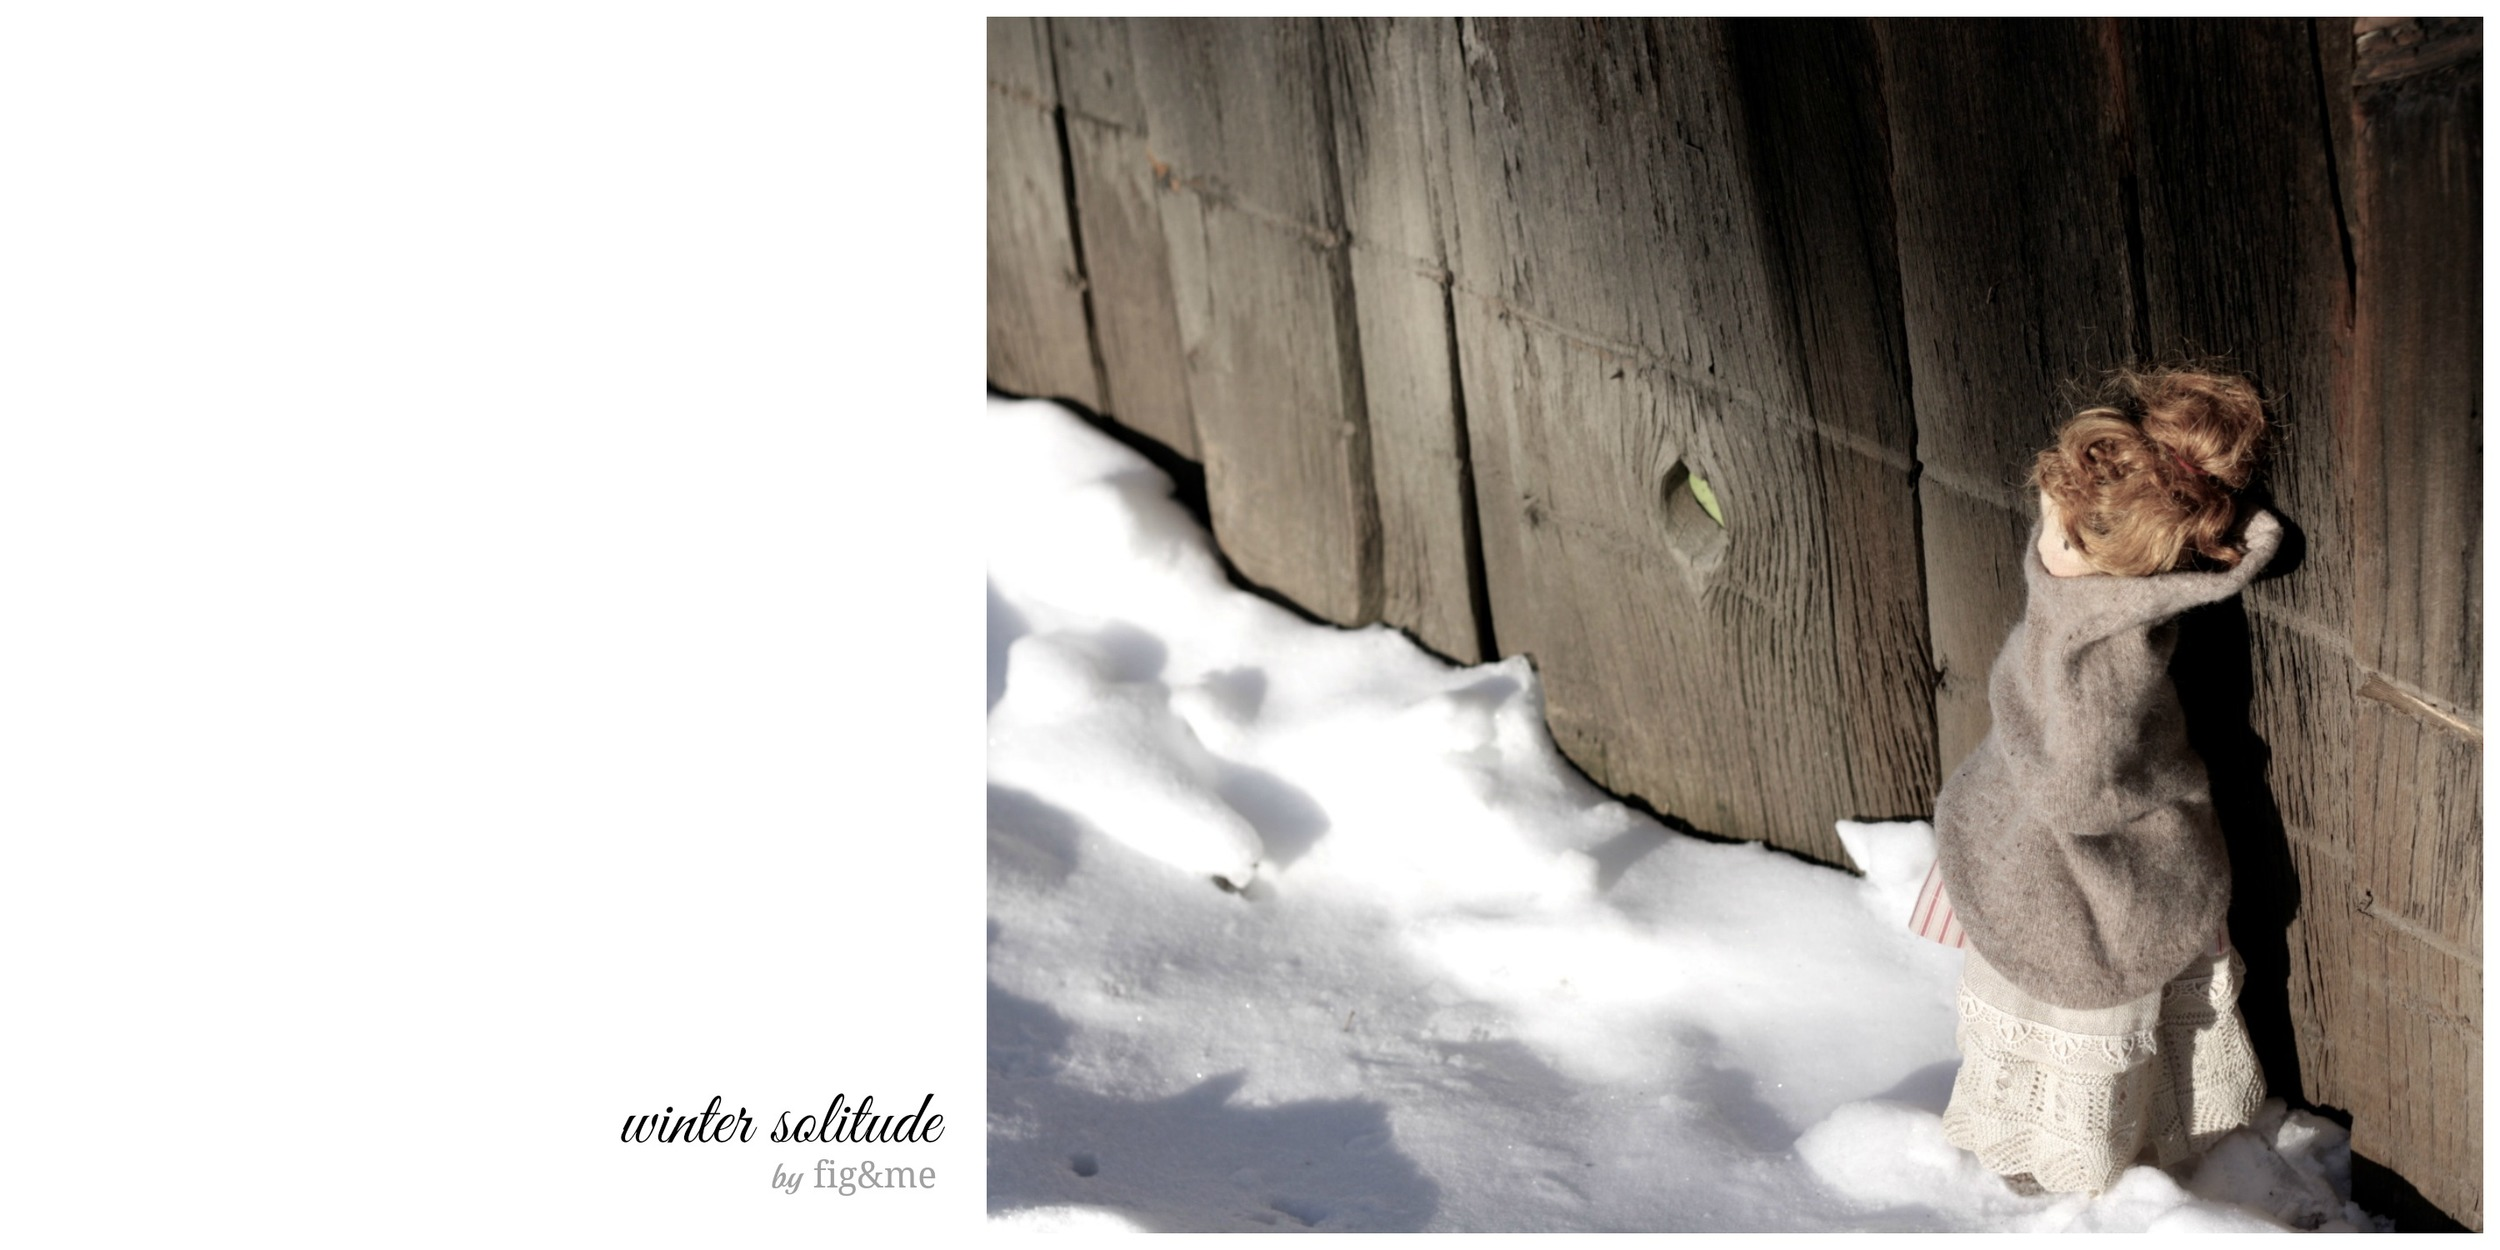 Winter solitude: Melina on the snow. A Mannikin style doll by Fig and me.